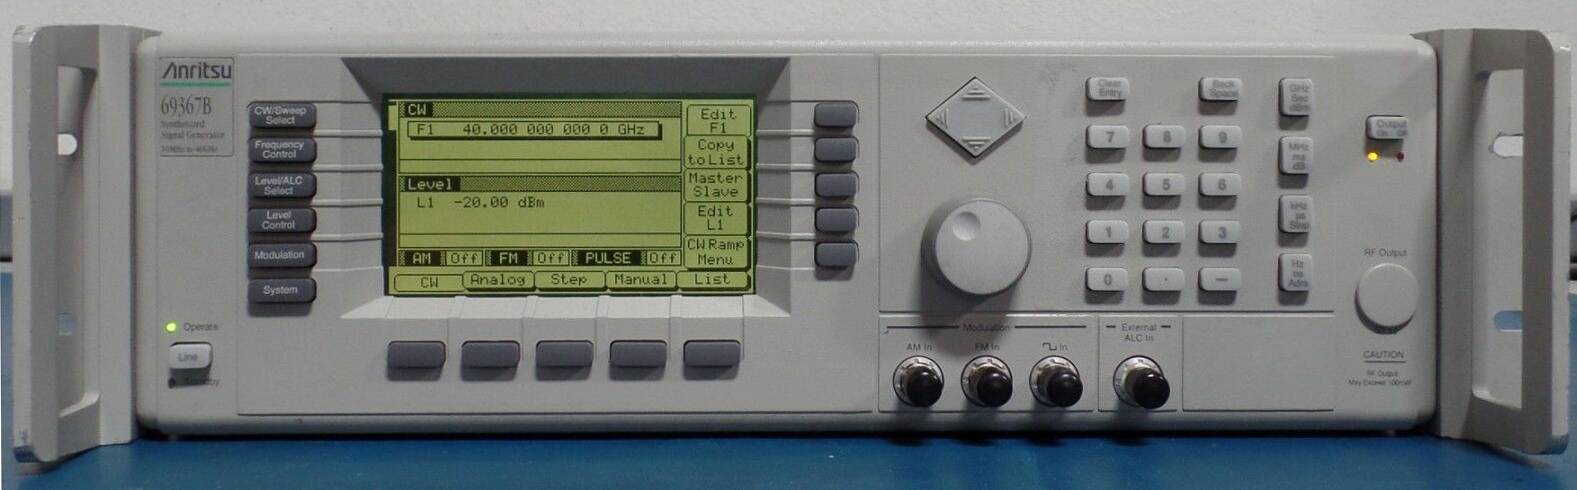 Anritsu 69367B Synthesized Signal Generator, 10MHz to 40GHz